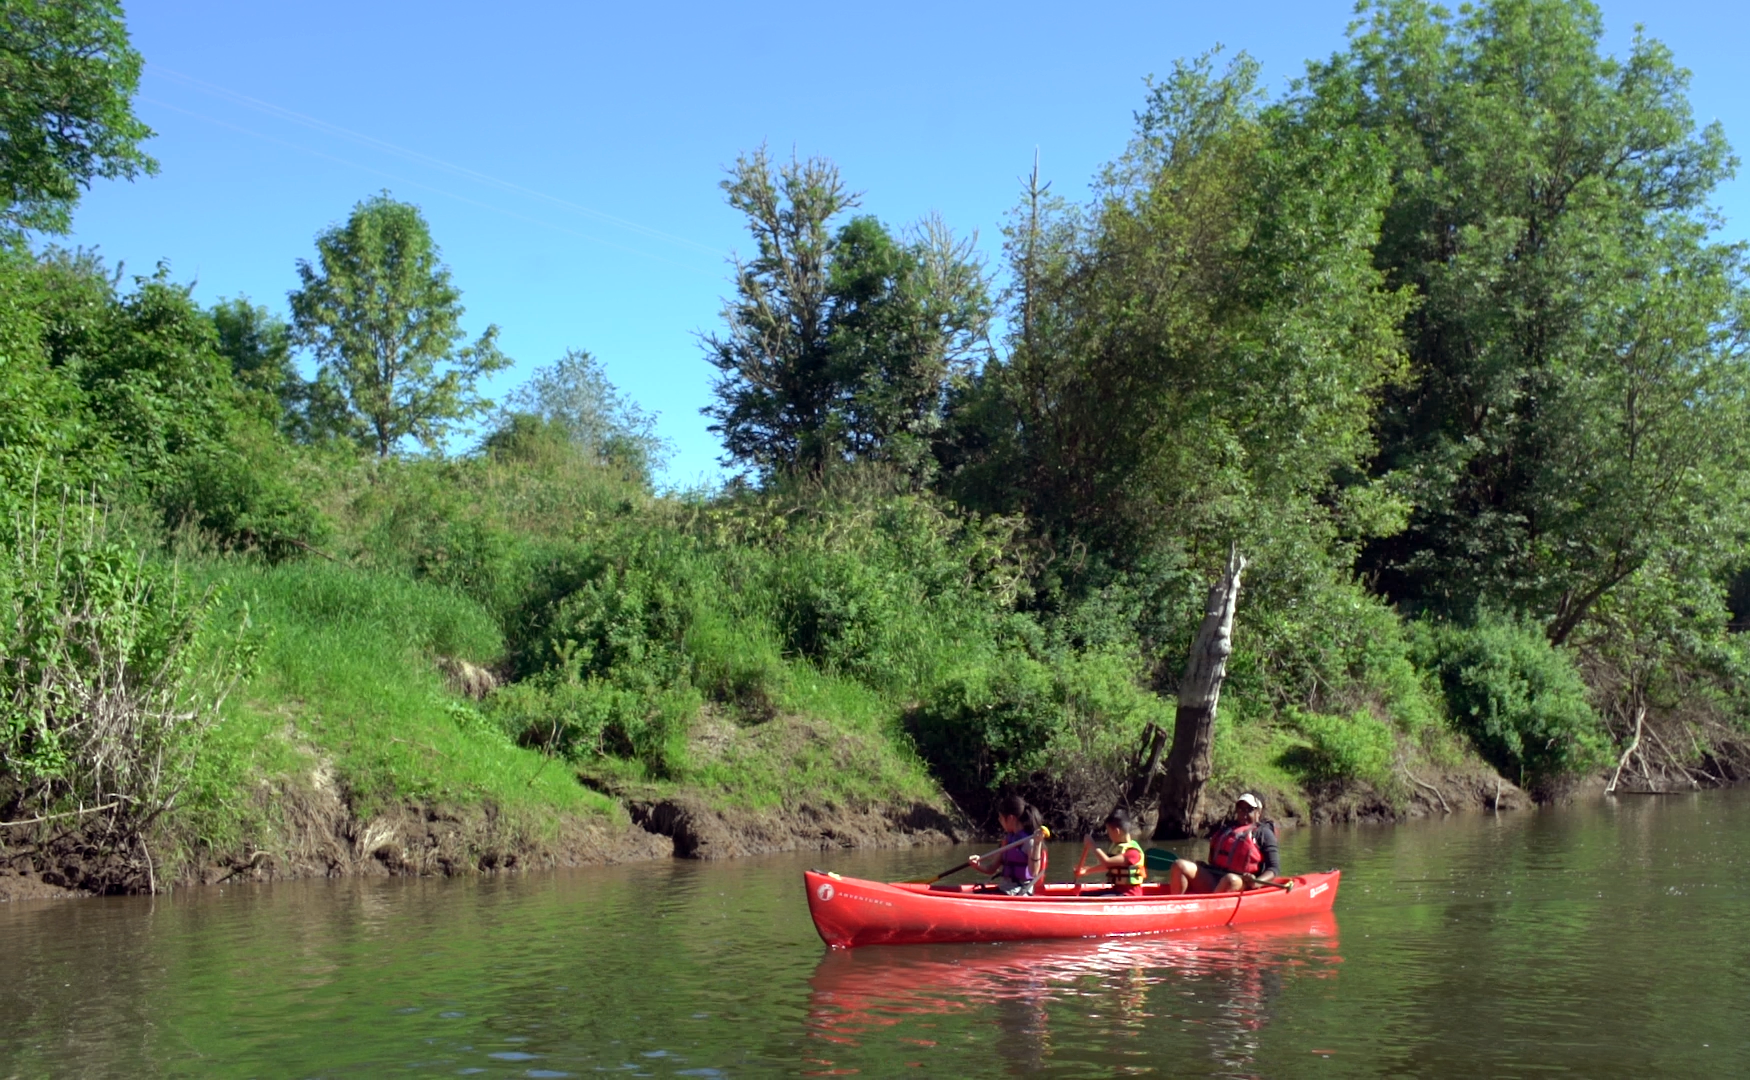 Discovery Day: People of all ages exploring their river